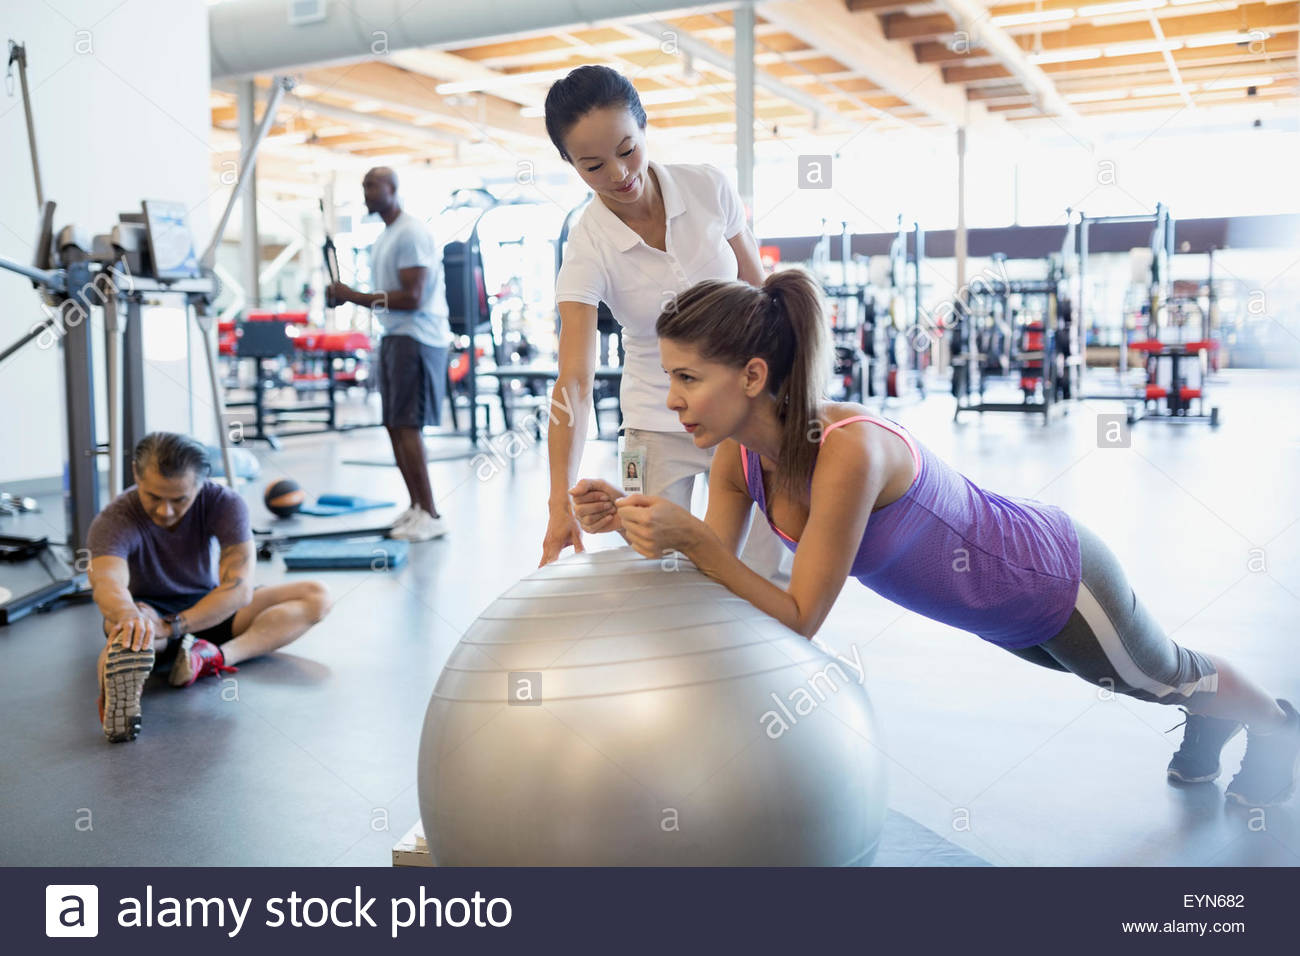 Physical therapist guiding patient holding fitness ball plank - Stock Image